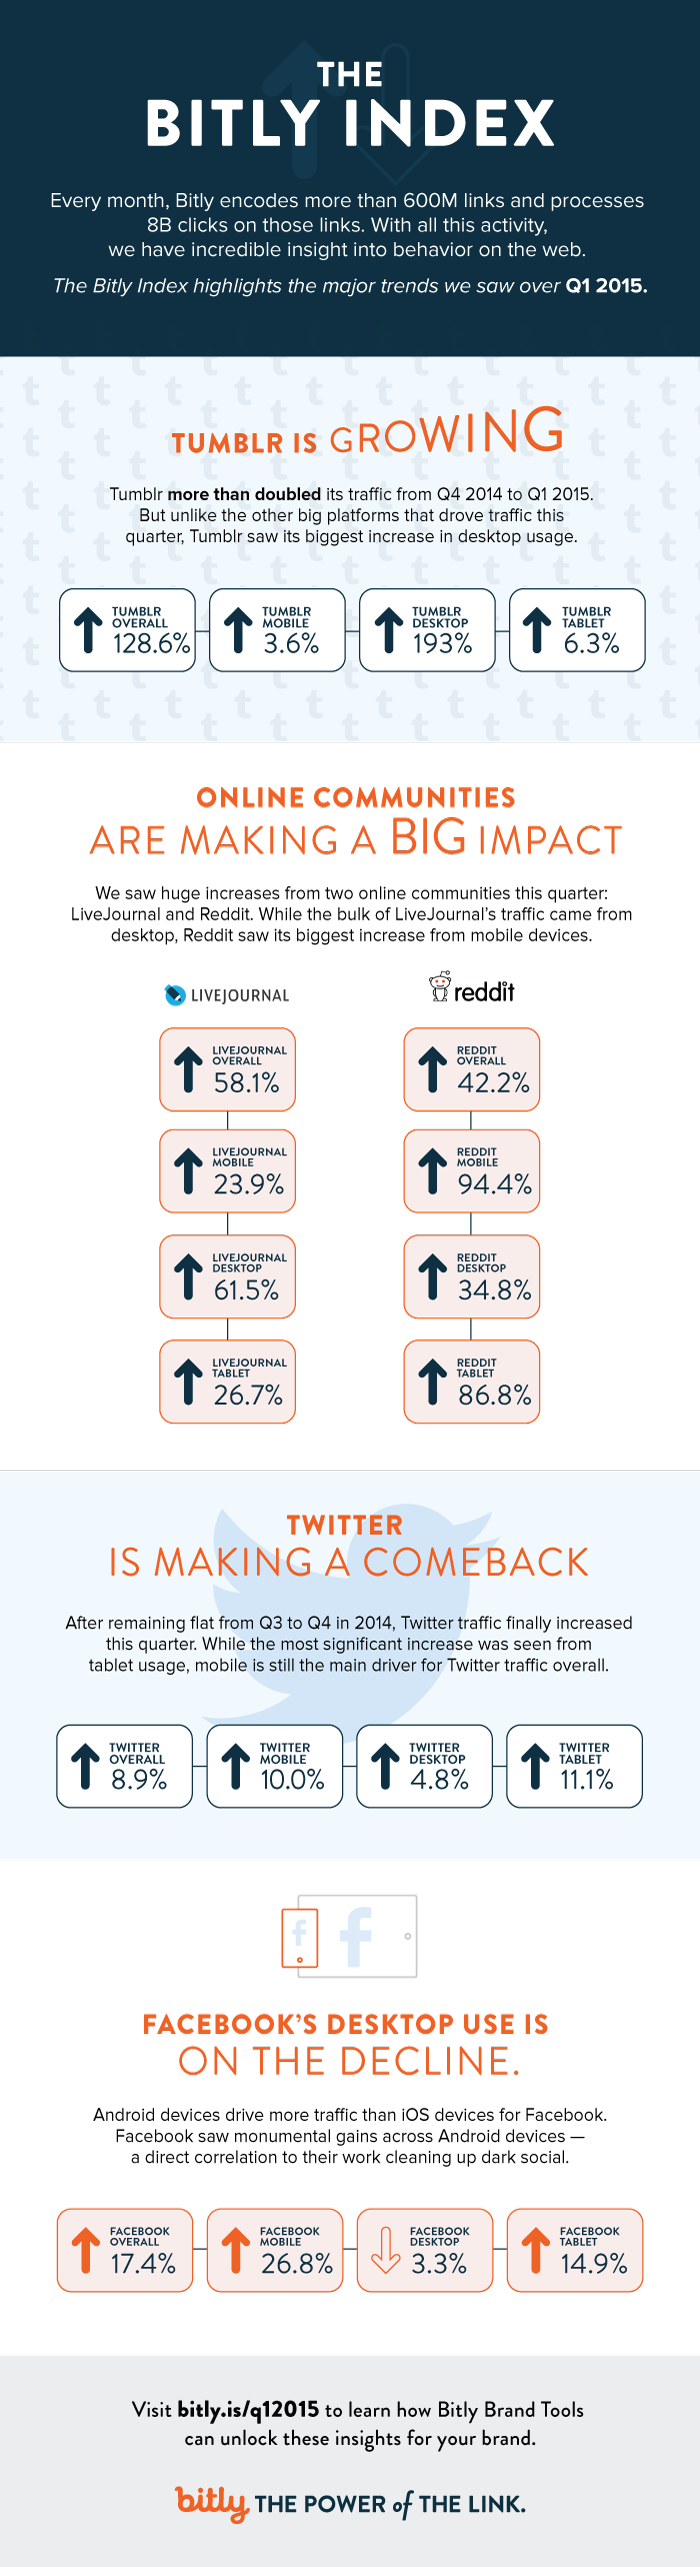 Tumblr, Reddit, Twitter, Facebook: Social Networking Trends Q1 2015 - #infographic